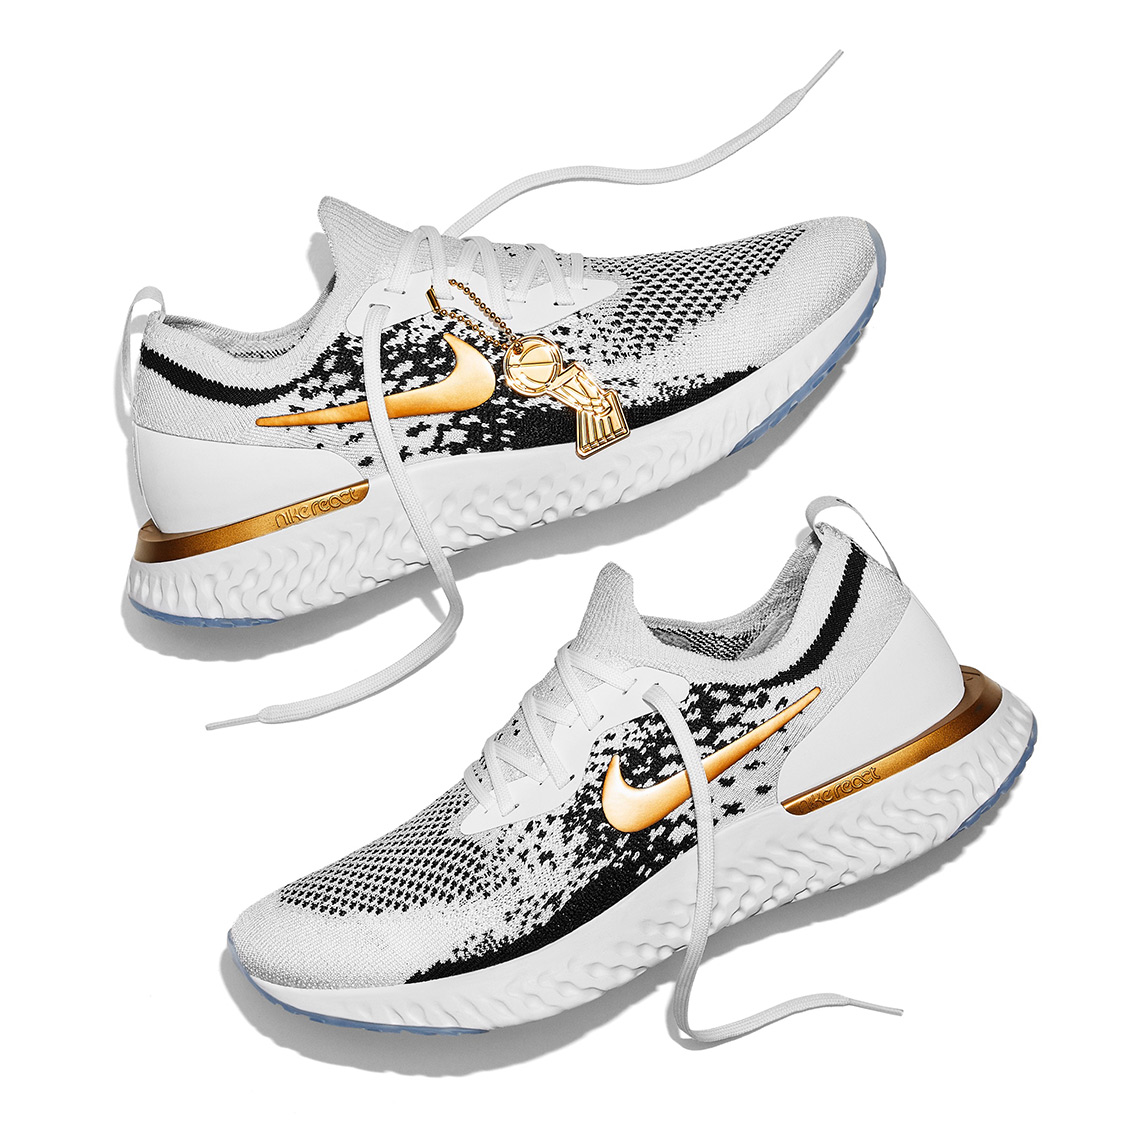 1d2a56f2f9860 See a first look below and remember that Nike still have one release left  from their Playoffs-themed Art Of A Champion Pack.